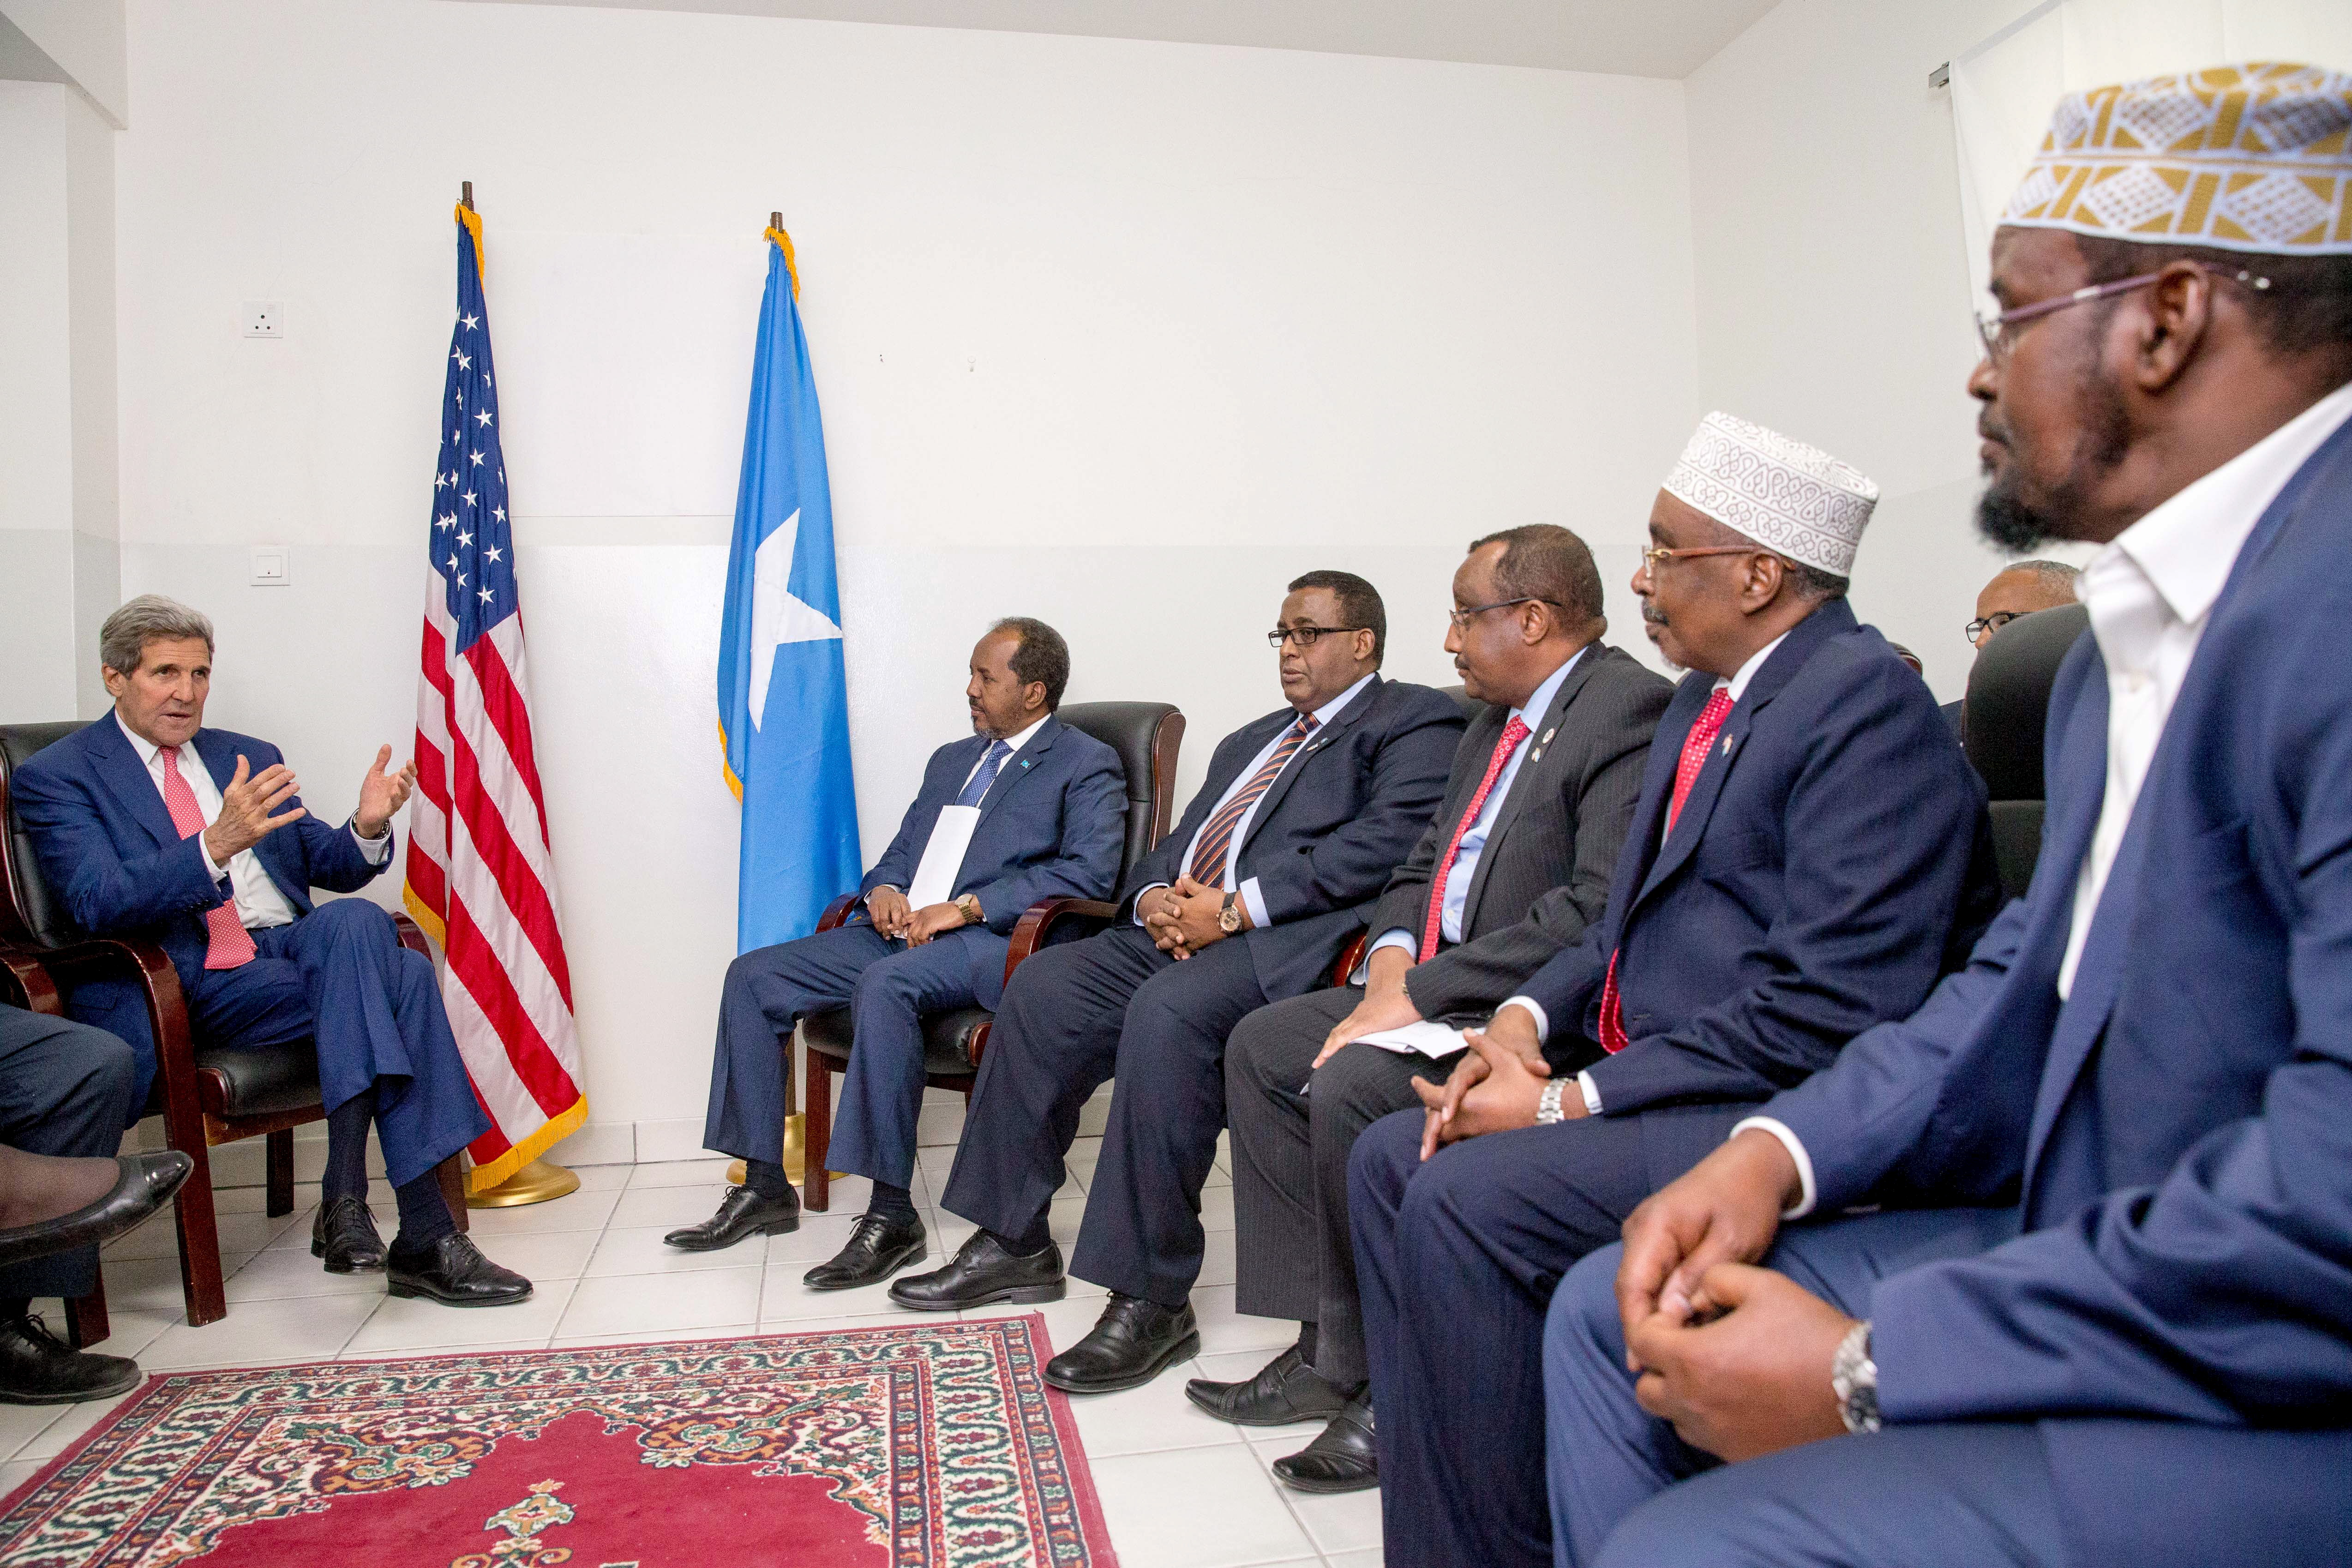 U.S. Secretary of State John Kerry (L) meets with President Hassan Sheikh Mohamud, second from left, Prime Minister Omar Abdirashid Ali Sharmarke, fourth from right, and regional Somali leaders at the airport in Mogadishu, Somalia, May 5, 2015.